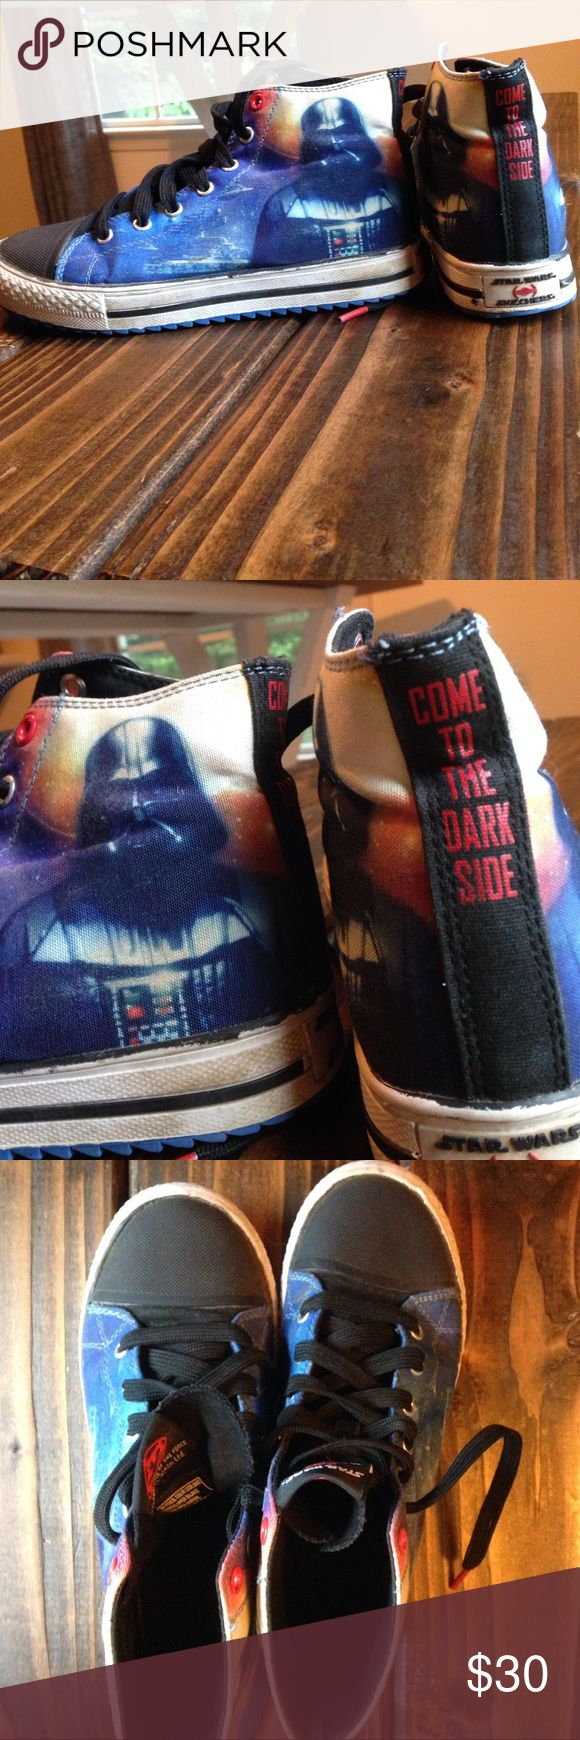 Star Wars Skechers I really wish these were my size. The graphics are awesome, inside of the shoes are like brand new. For any parent that has a kid and loves Star Wars this would be a perfect gift. Skechers Shoes Sneakers